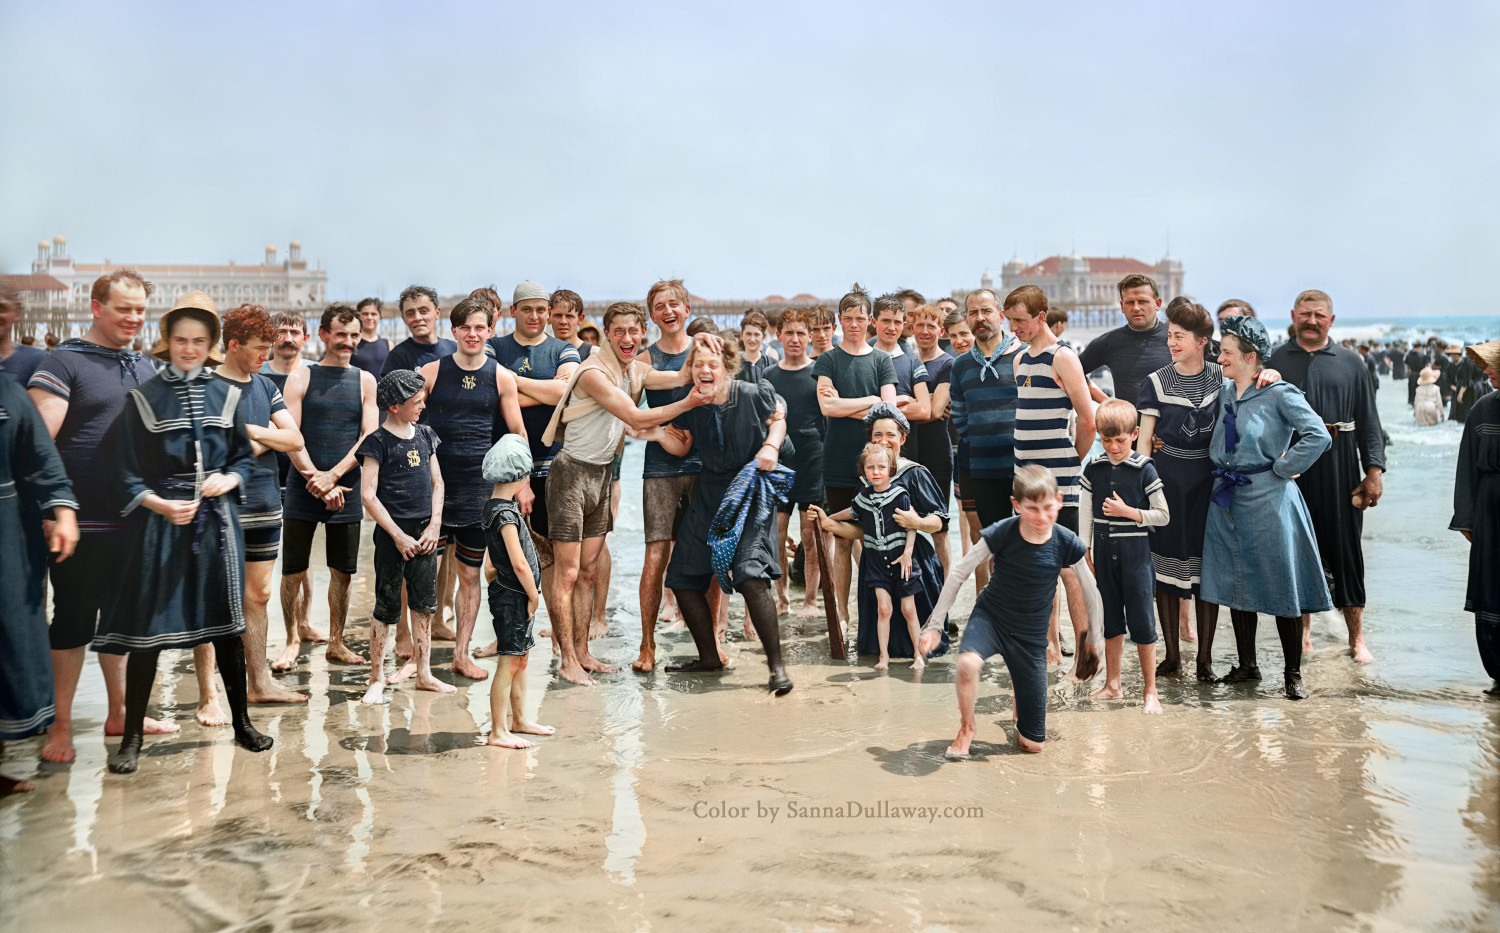 colorized_images_270814_8